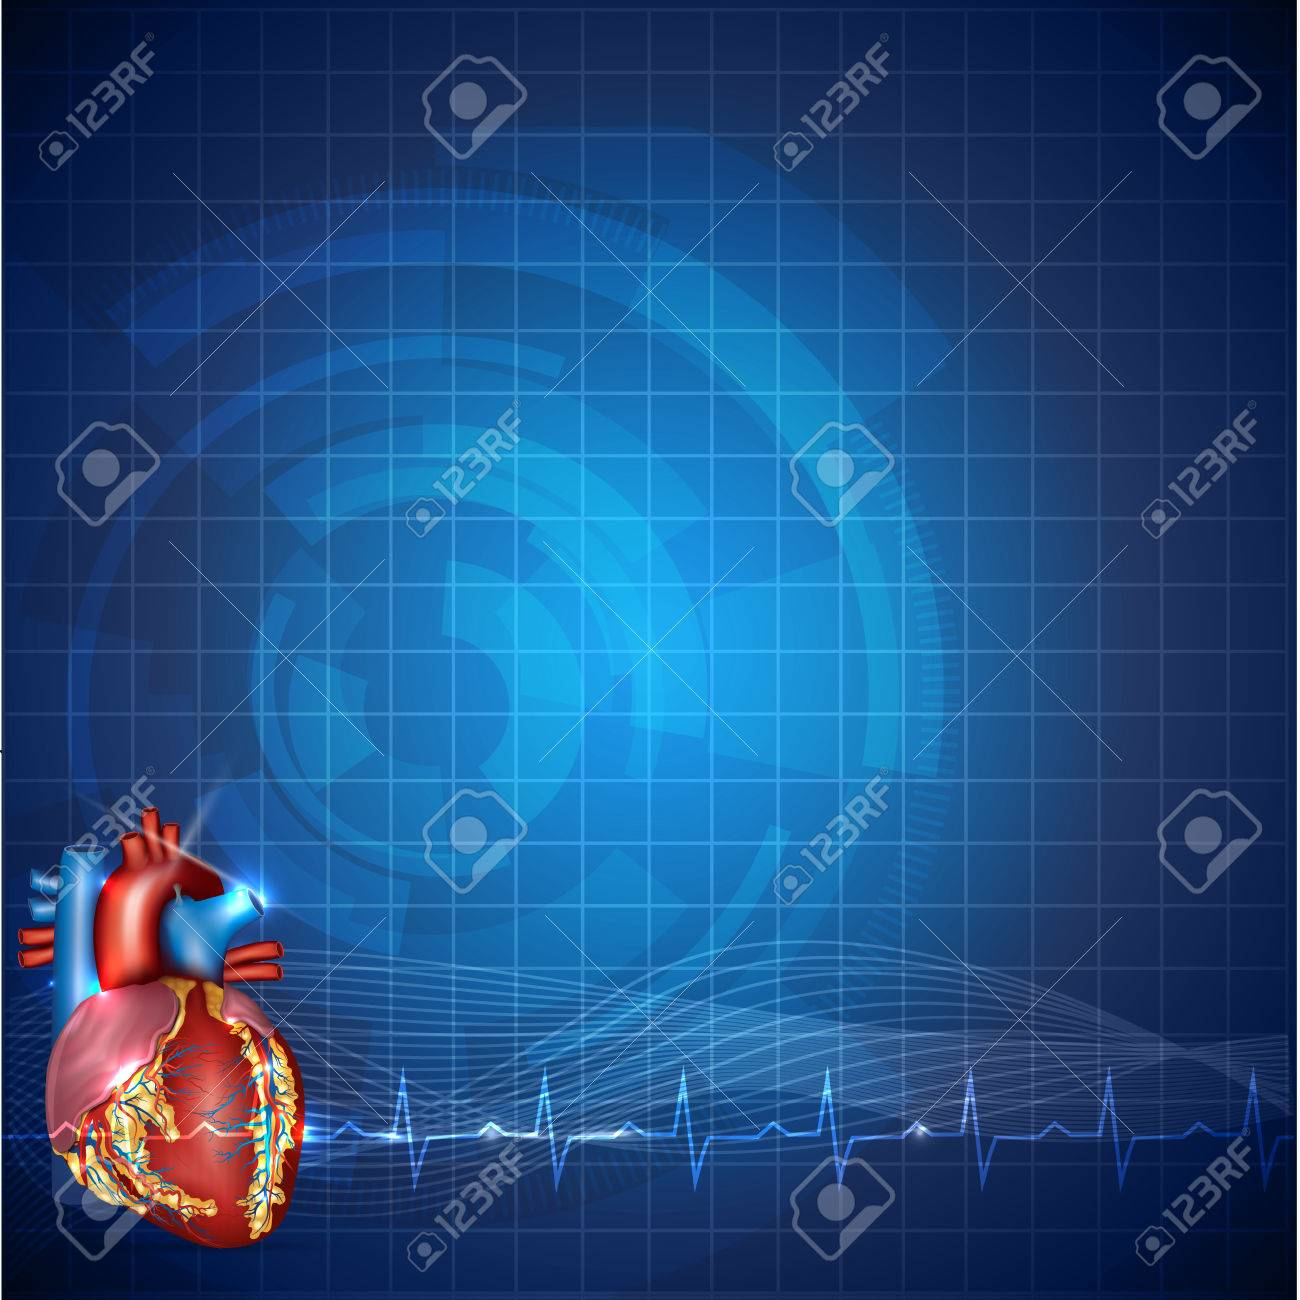 Cardiology Technology Background, Detailed Human Heart Anatomy ...